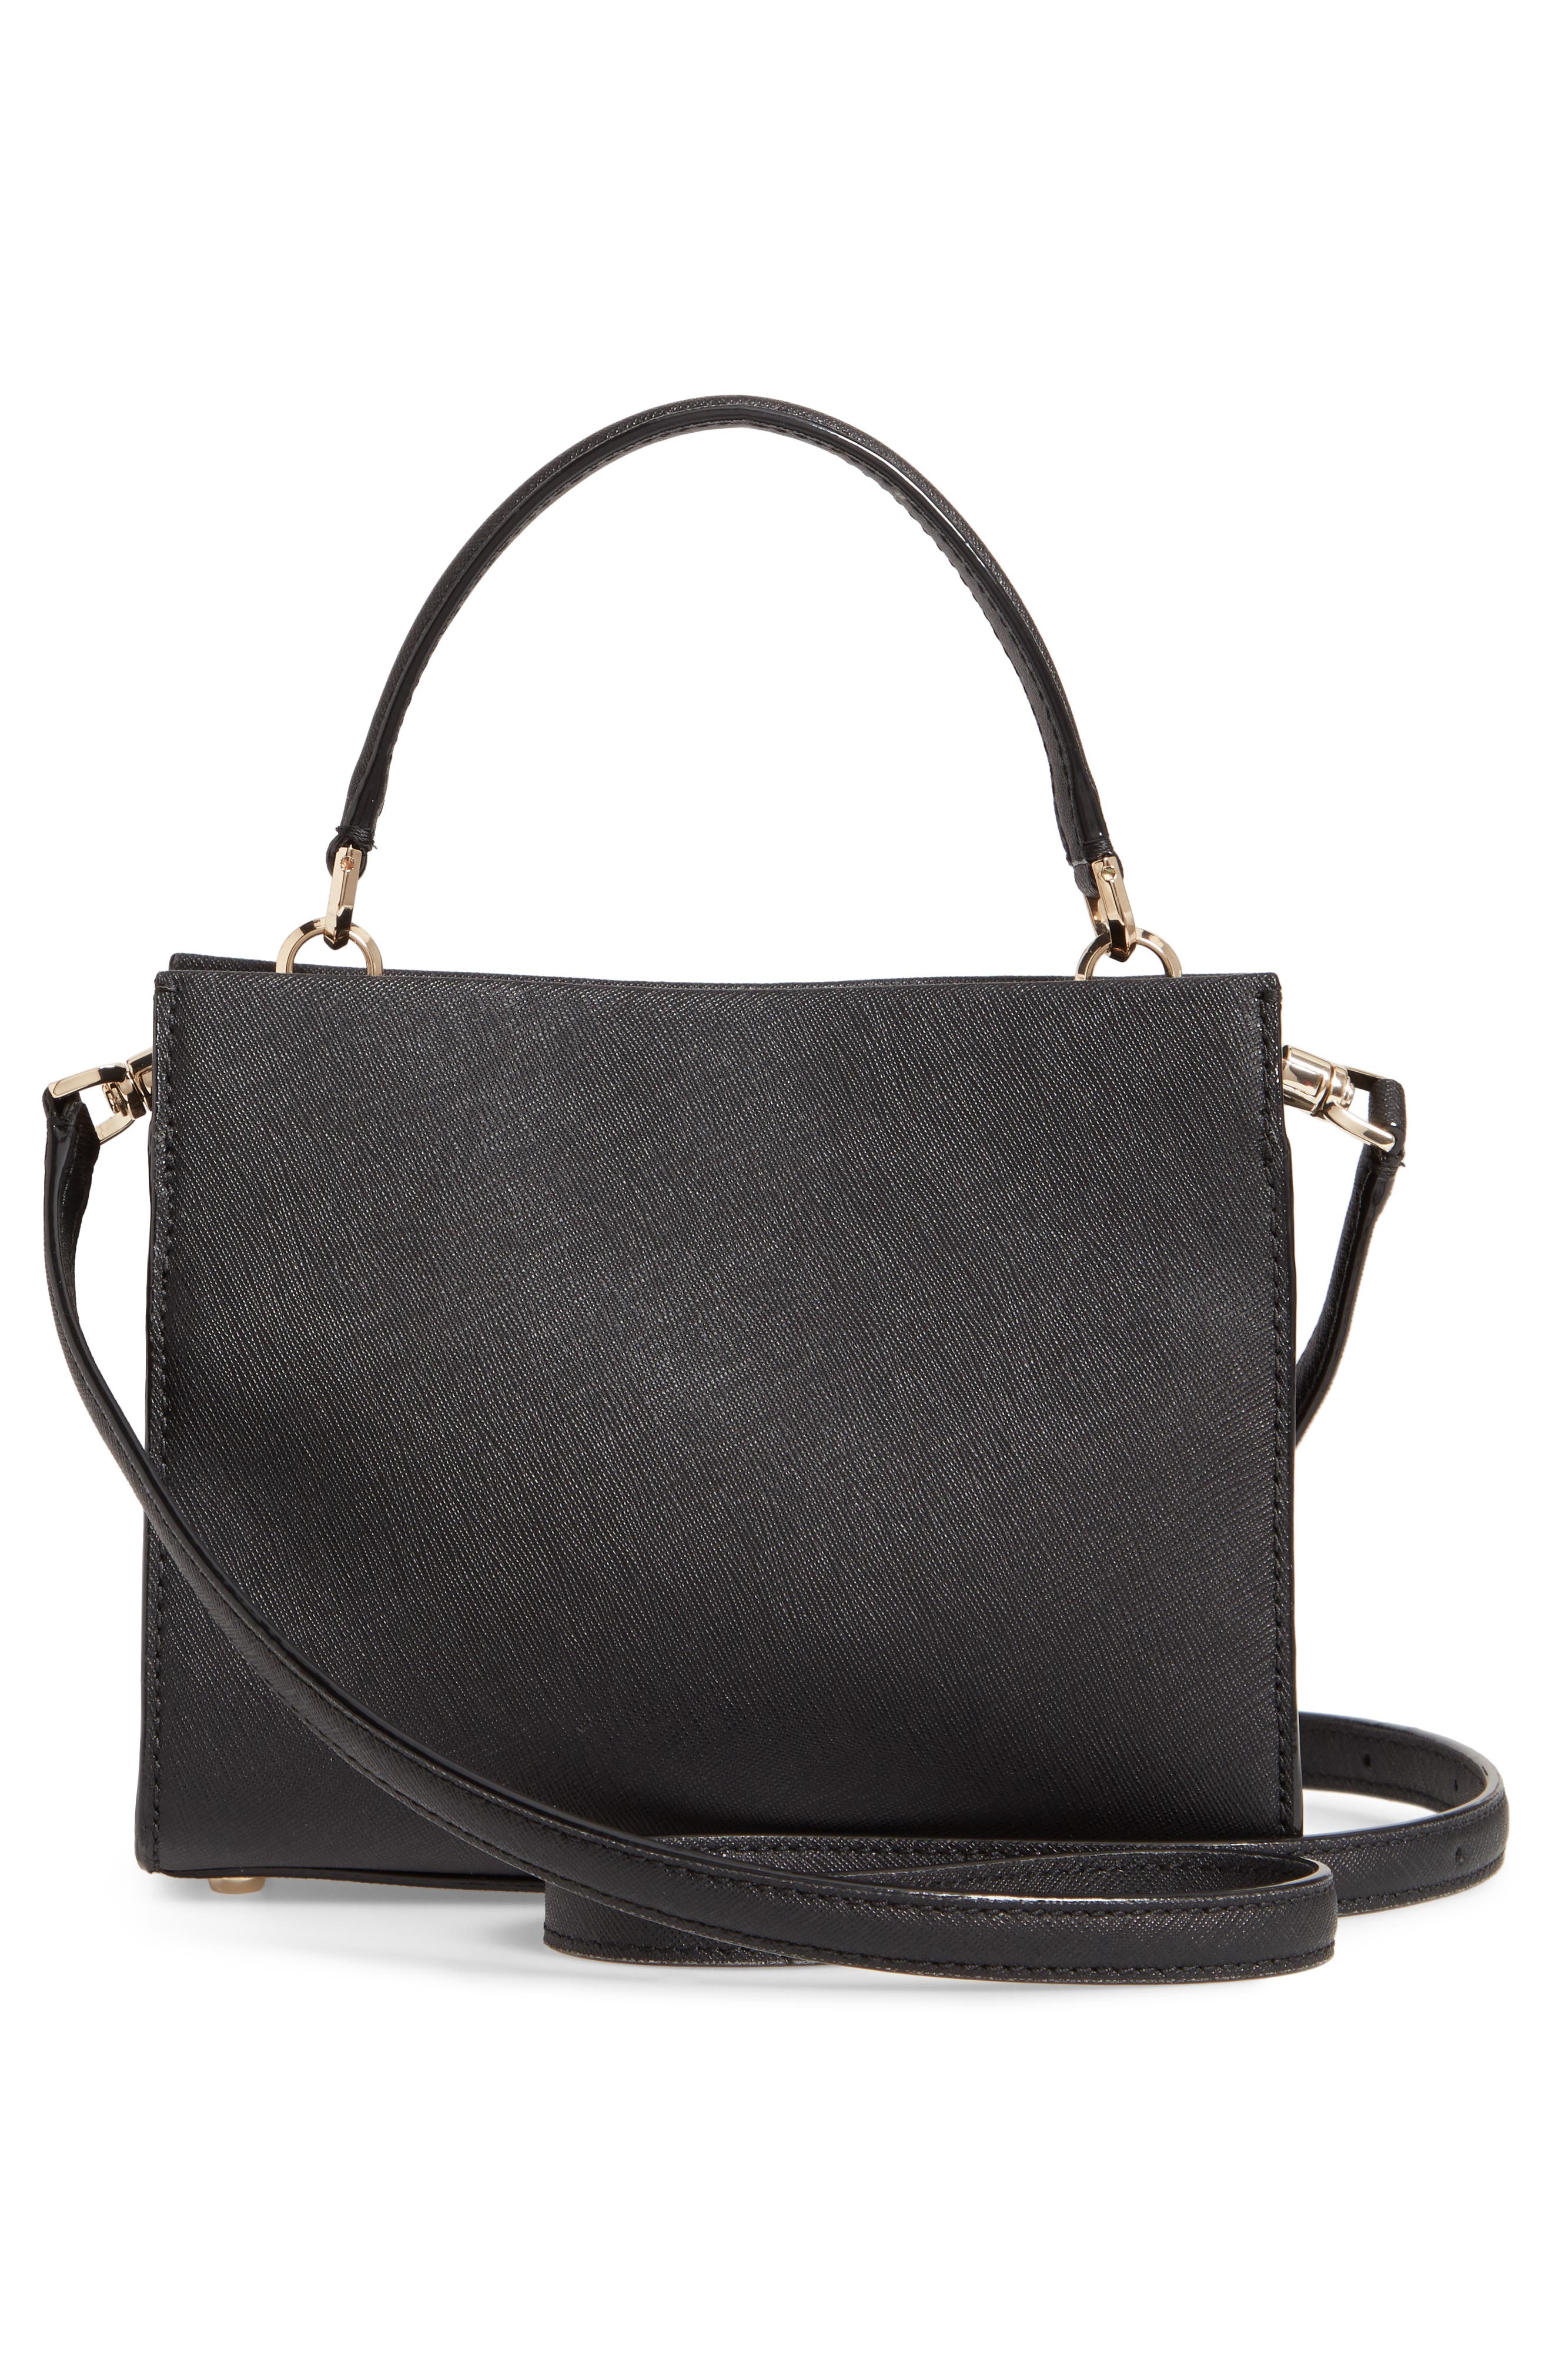 small cameron street - sara leather satchel,                             Alternate thumbnail 3, color,                             001